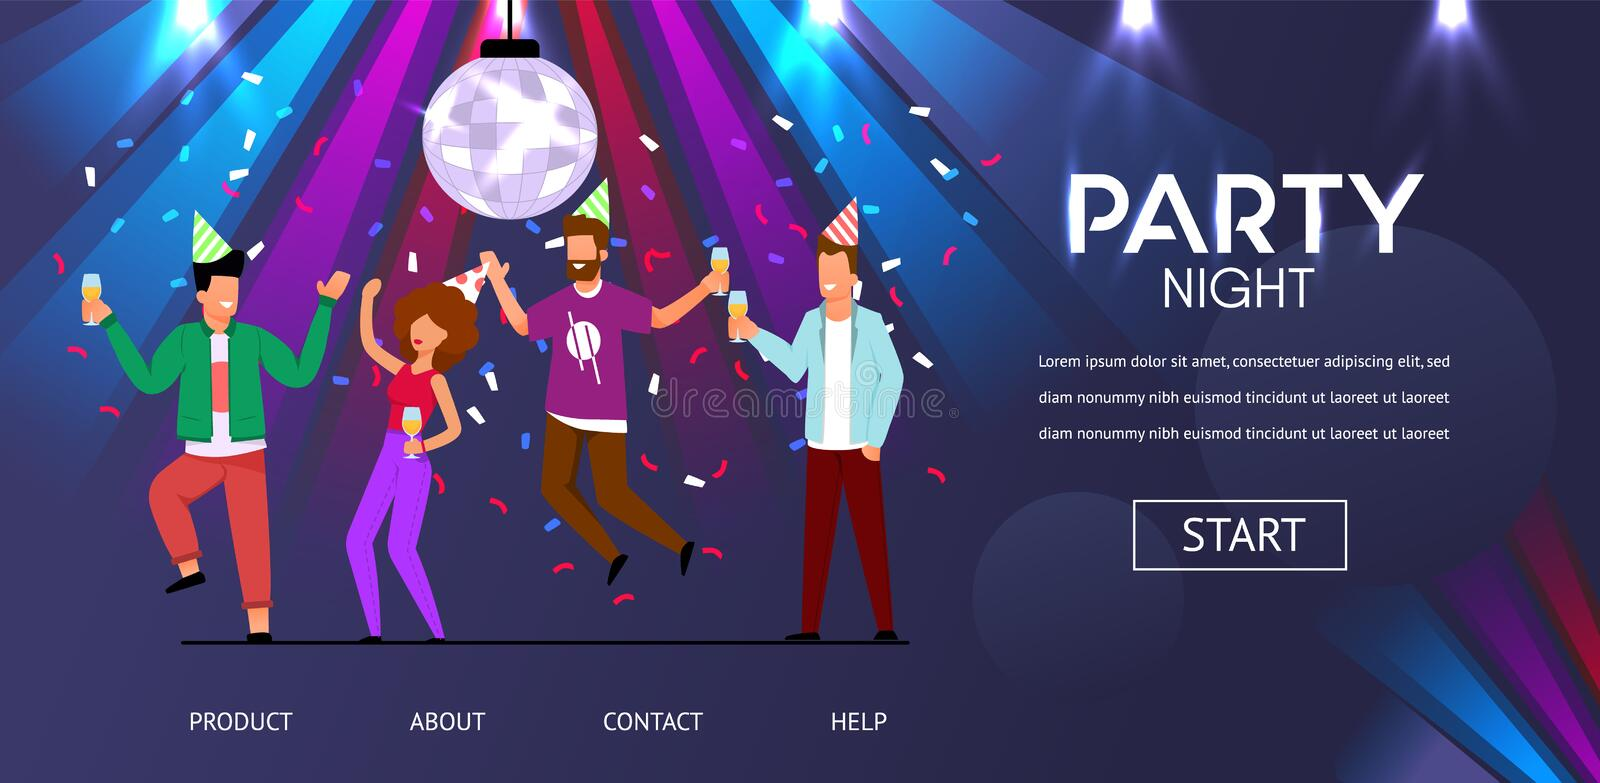 Man Woman Friends Dance Party Night Illustration vector illustration